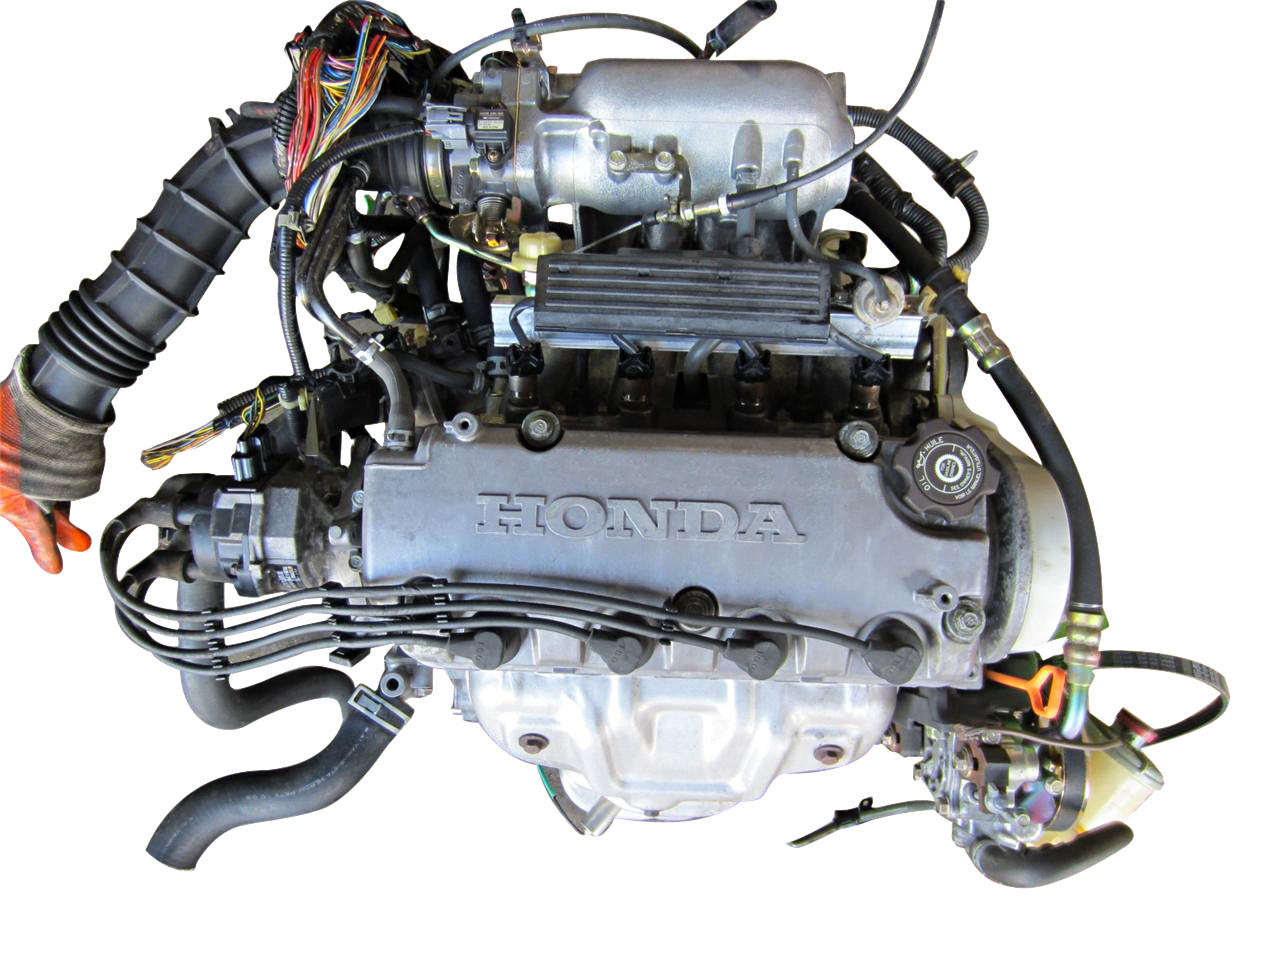 Honda civic engines for sale for Honda motors for sale cheap